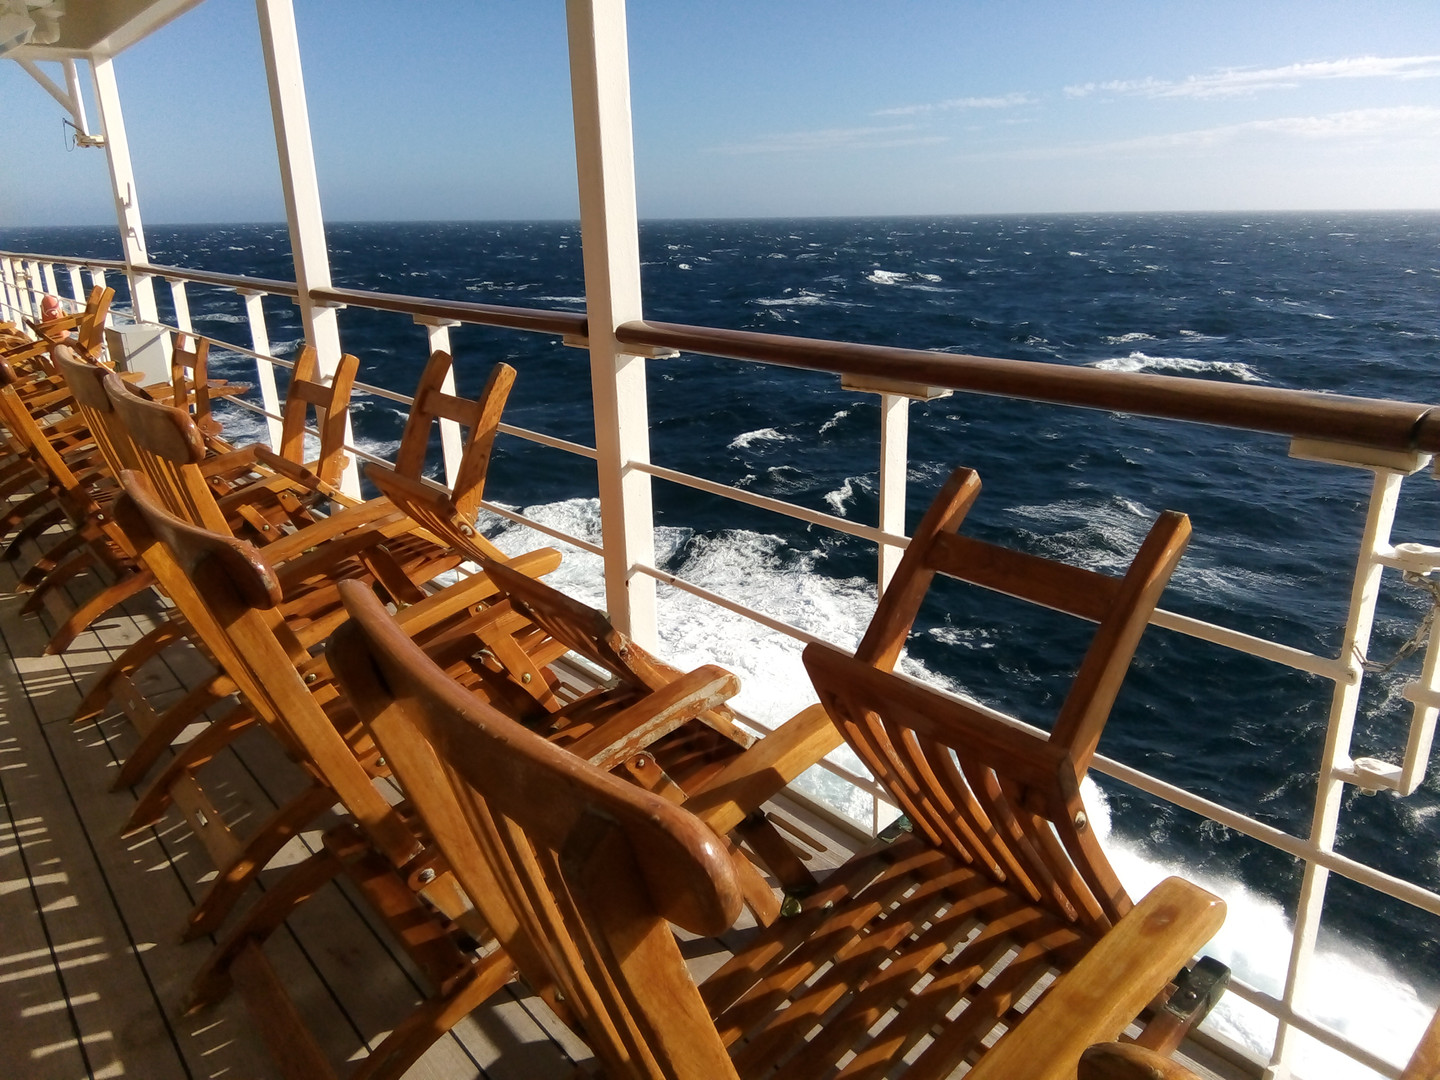 Deck chairs on the Titanic!!